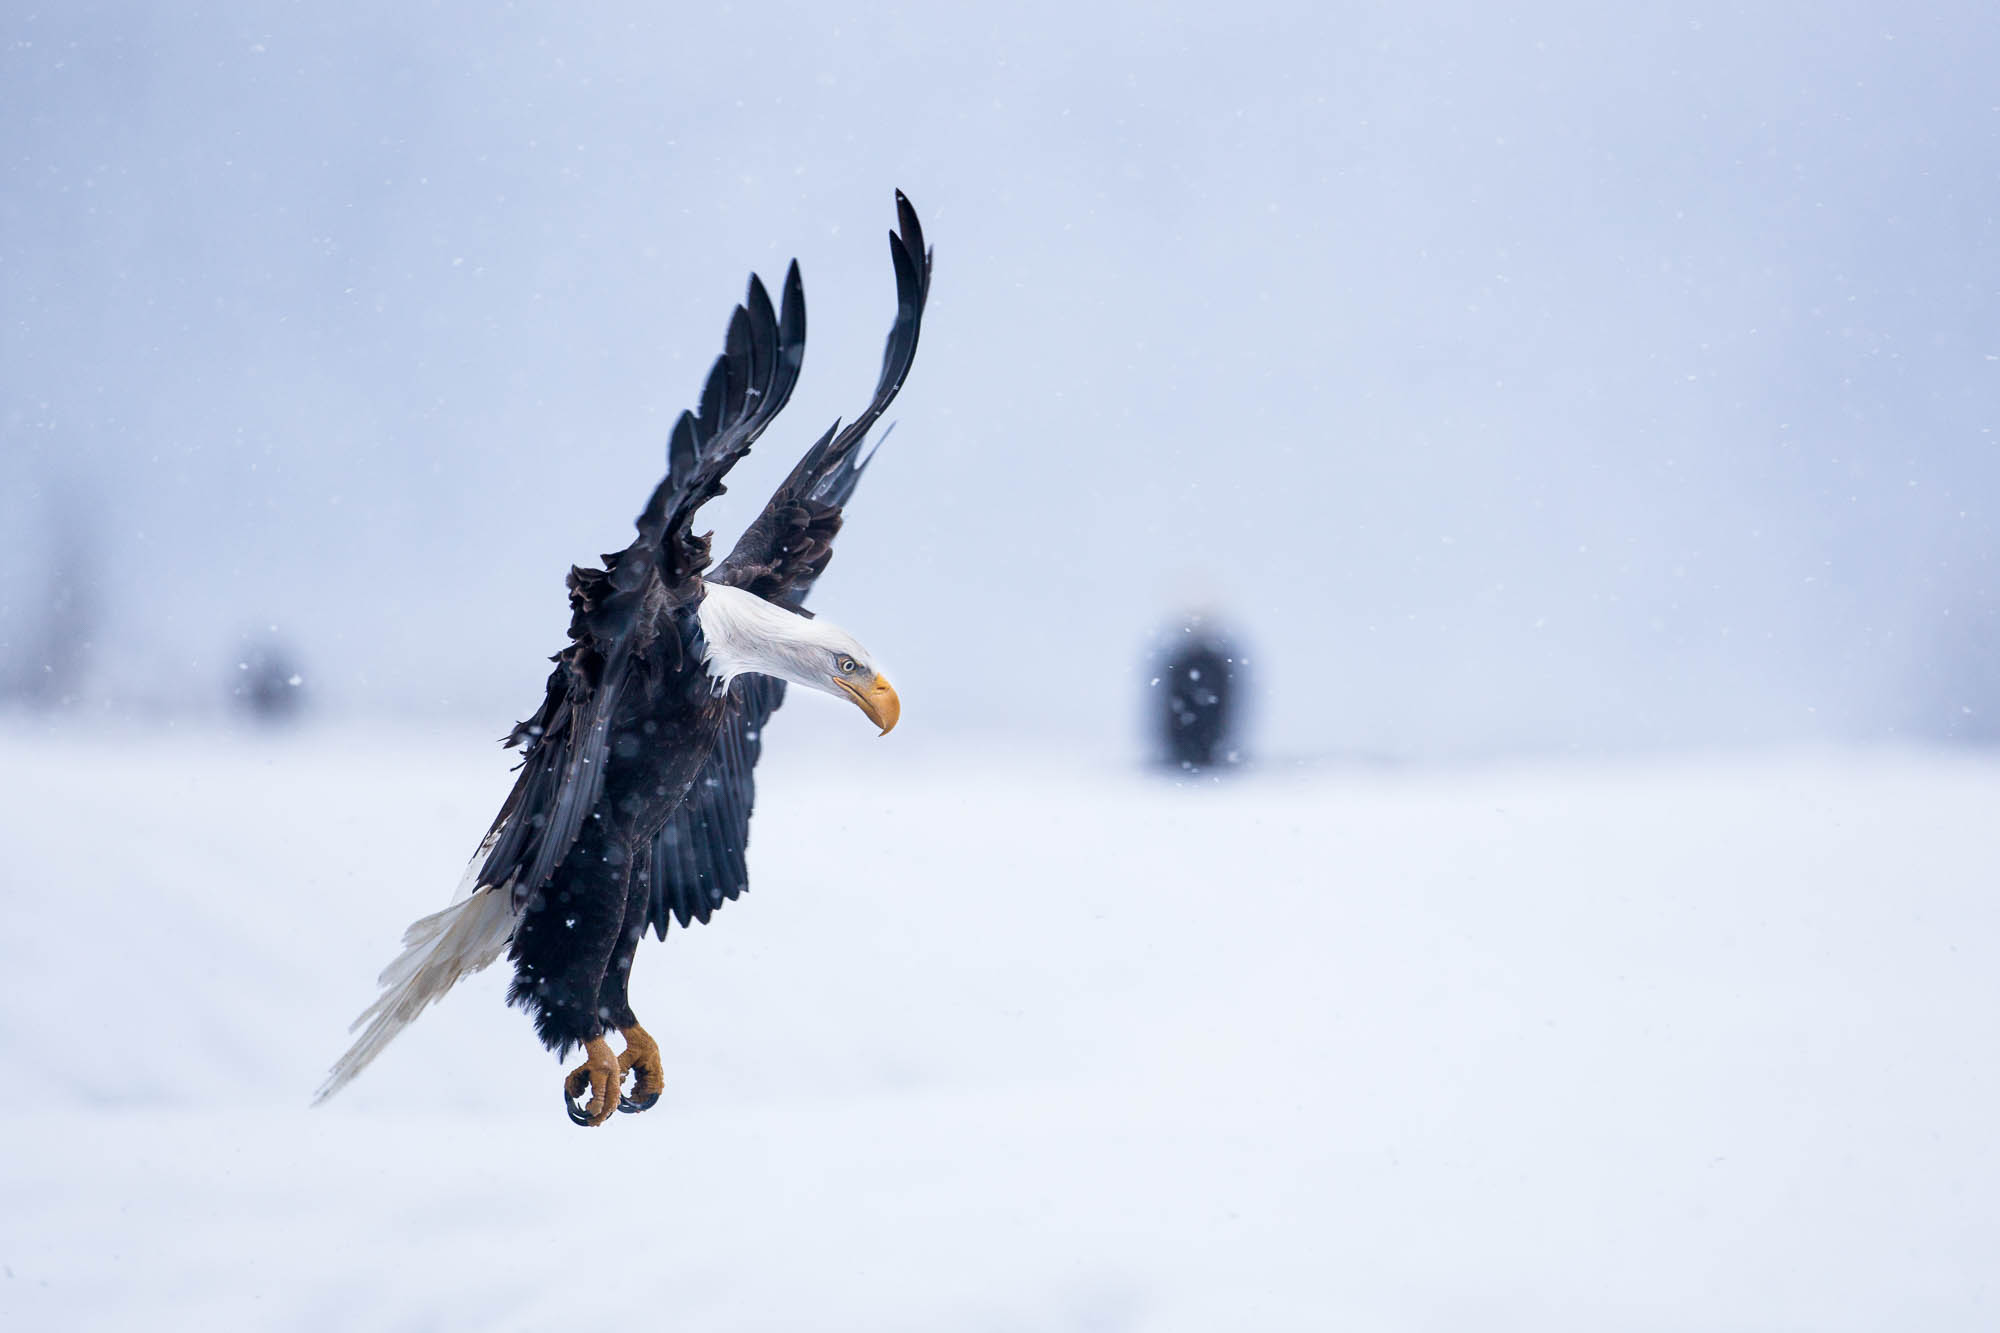 Bad Eagle landing in snow fall